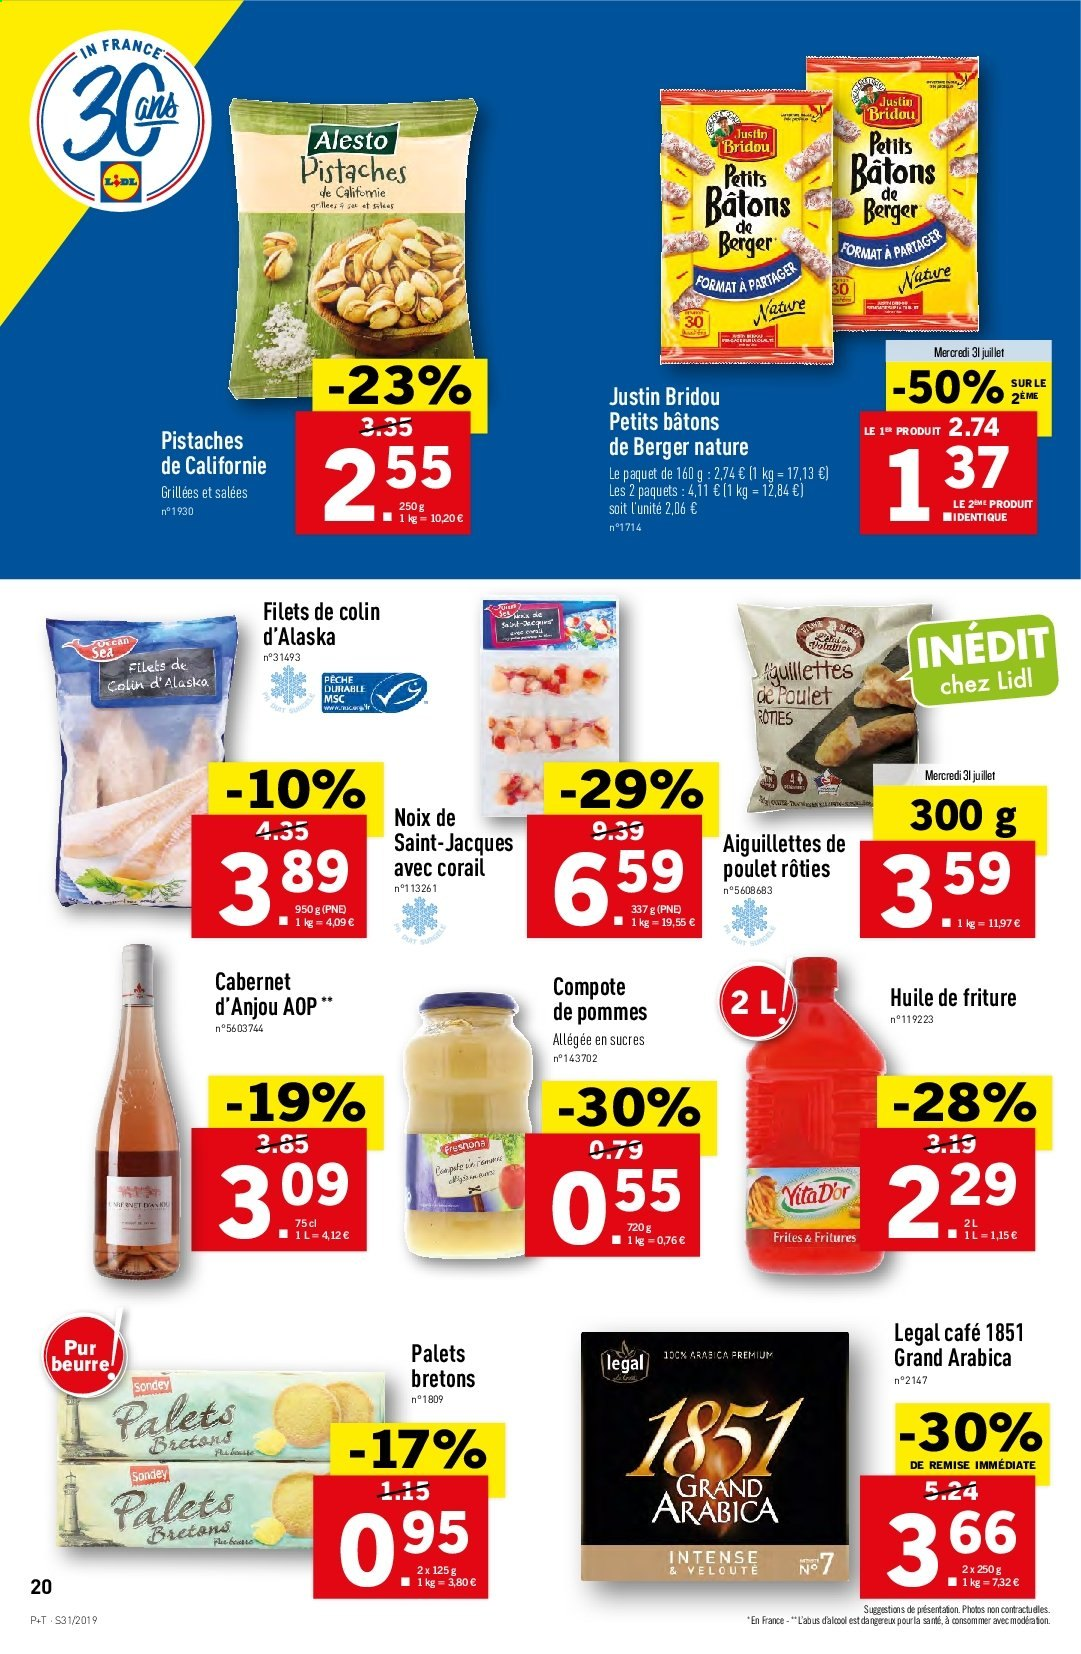 Catalogue Lidl - 31.07.2019 - 06.08.2019. Page 20.